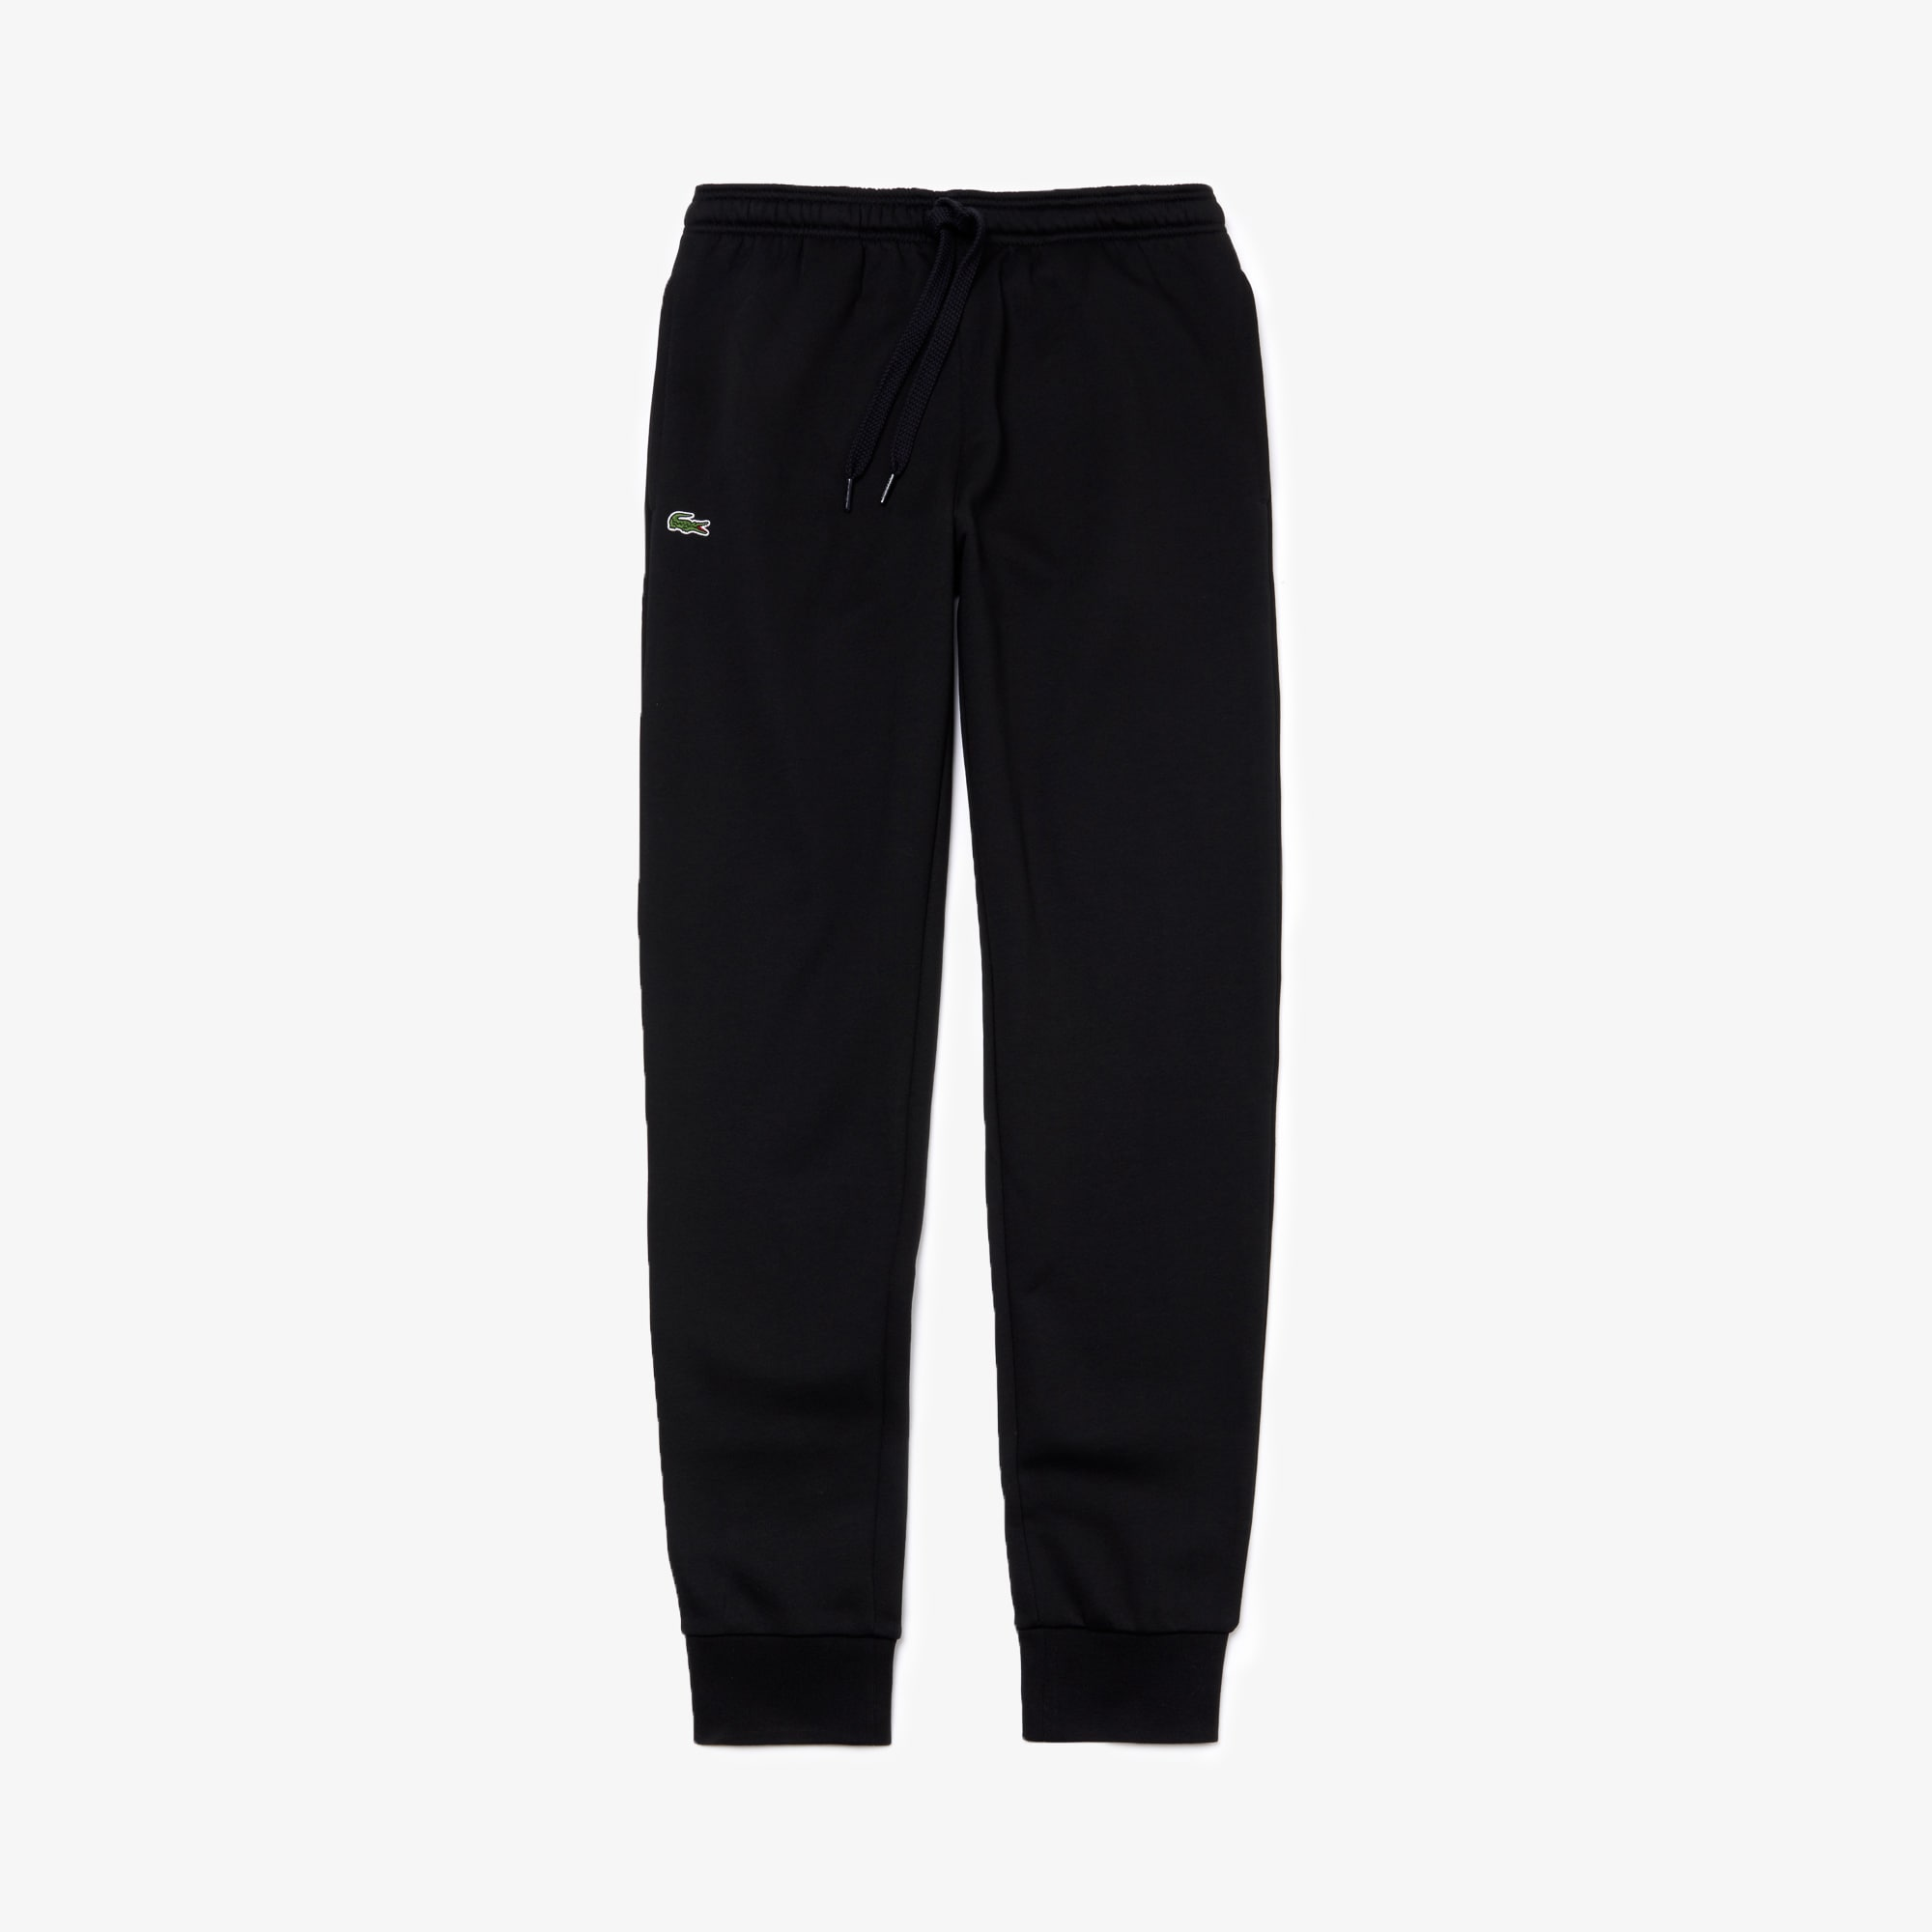 Men's SPORT Cotton Fleece Tennis Sweatpants